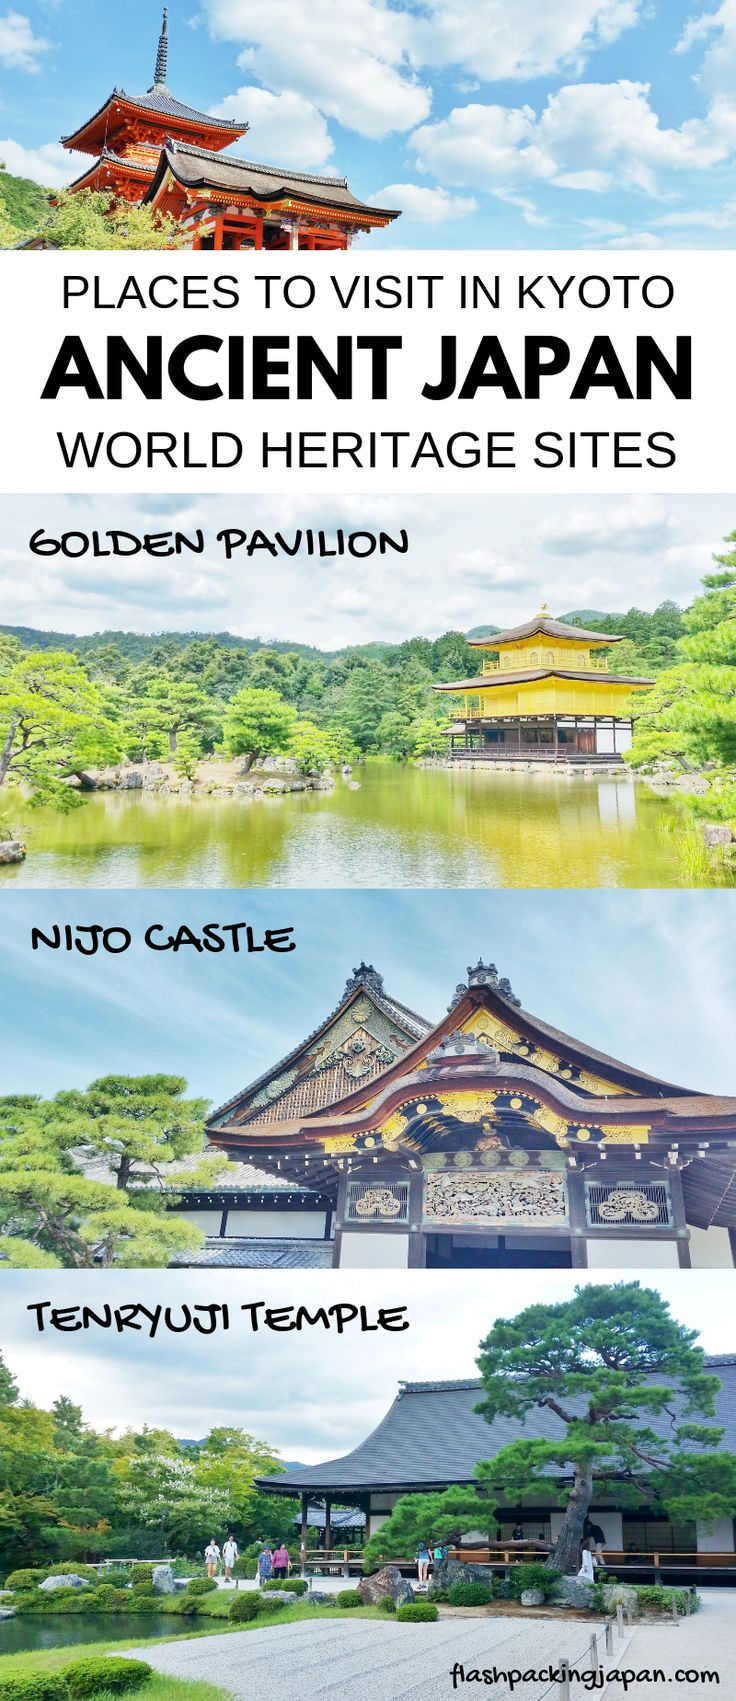 MAP: UNESCO world heritage sites in Kyoto – PHOTOS – Backpacking Japan Travel